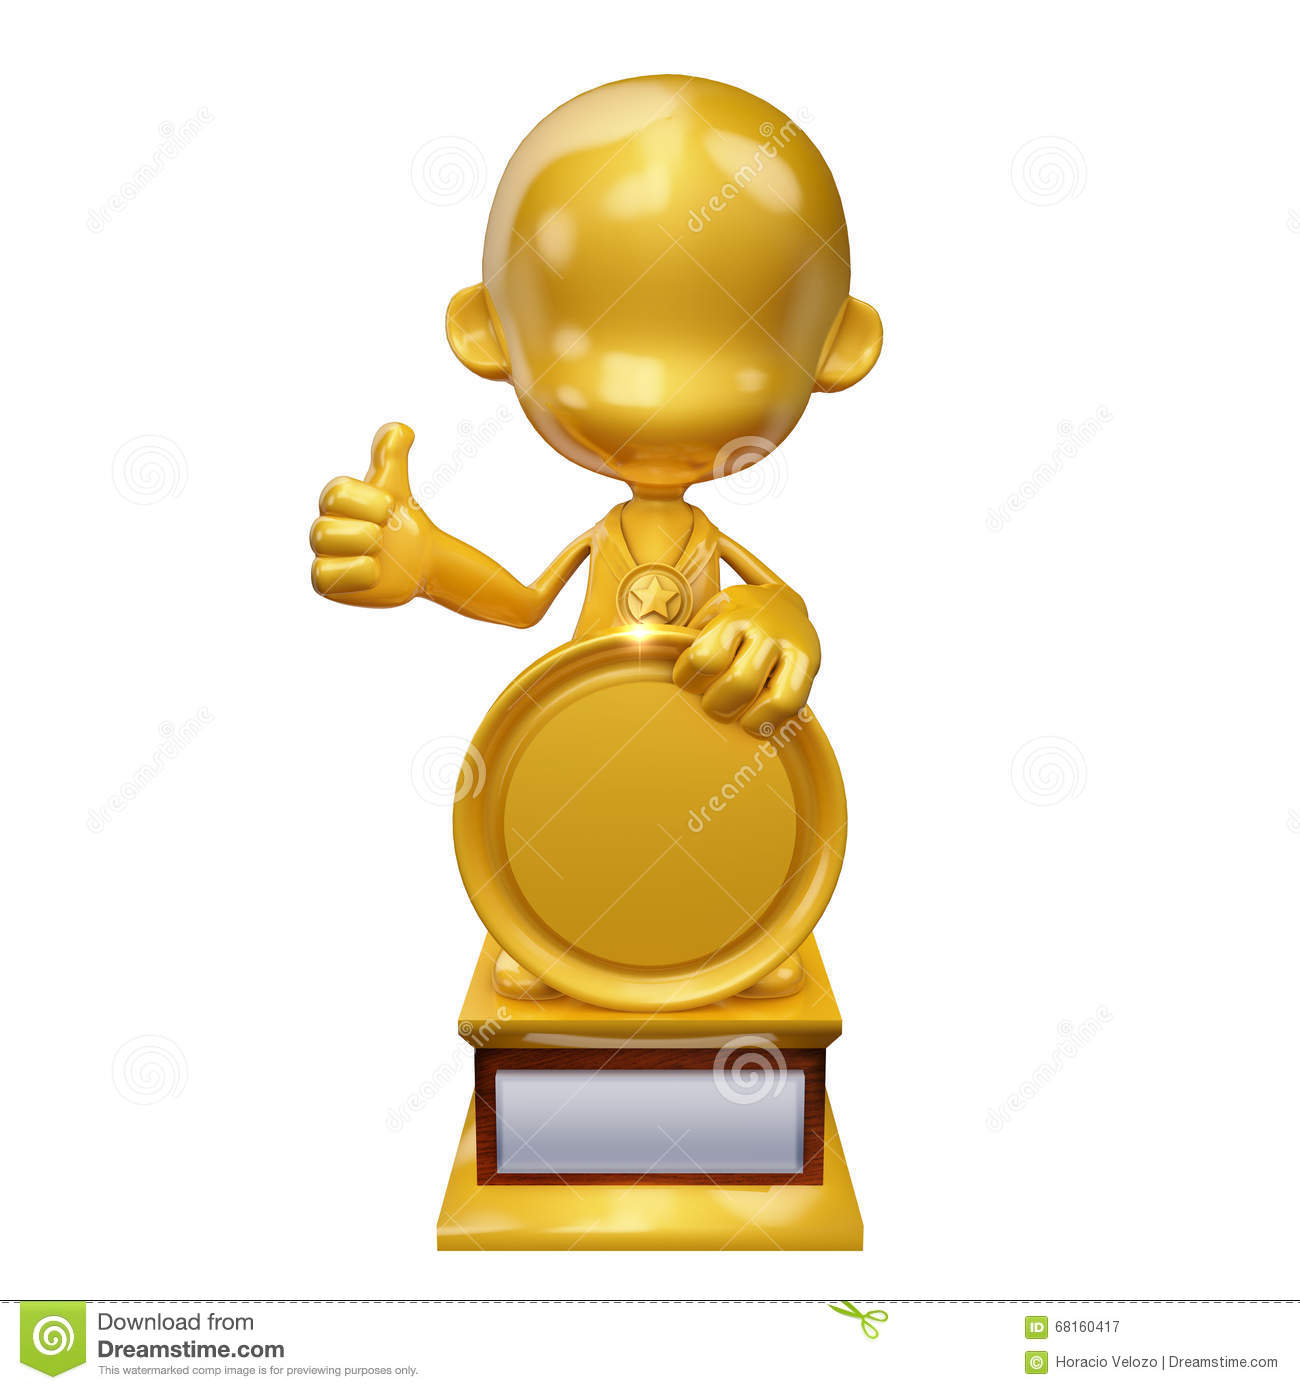 Golden Guy Trophy Holding Medal